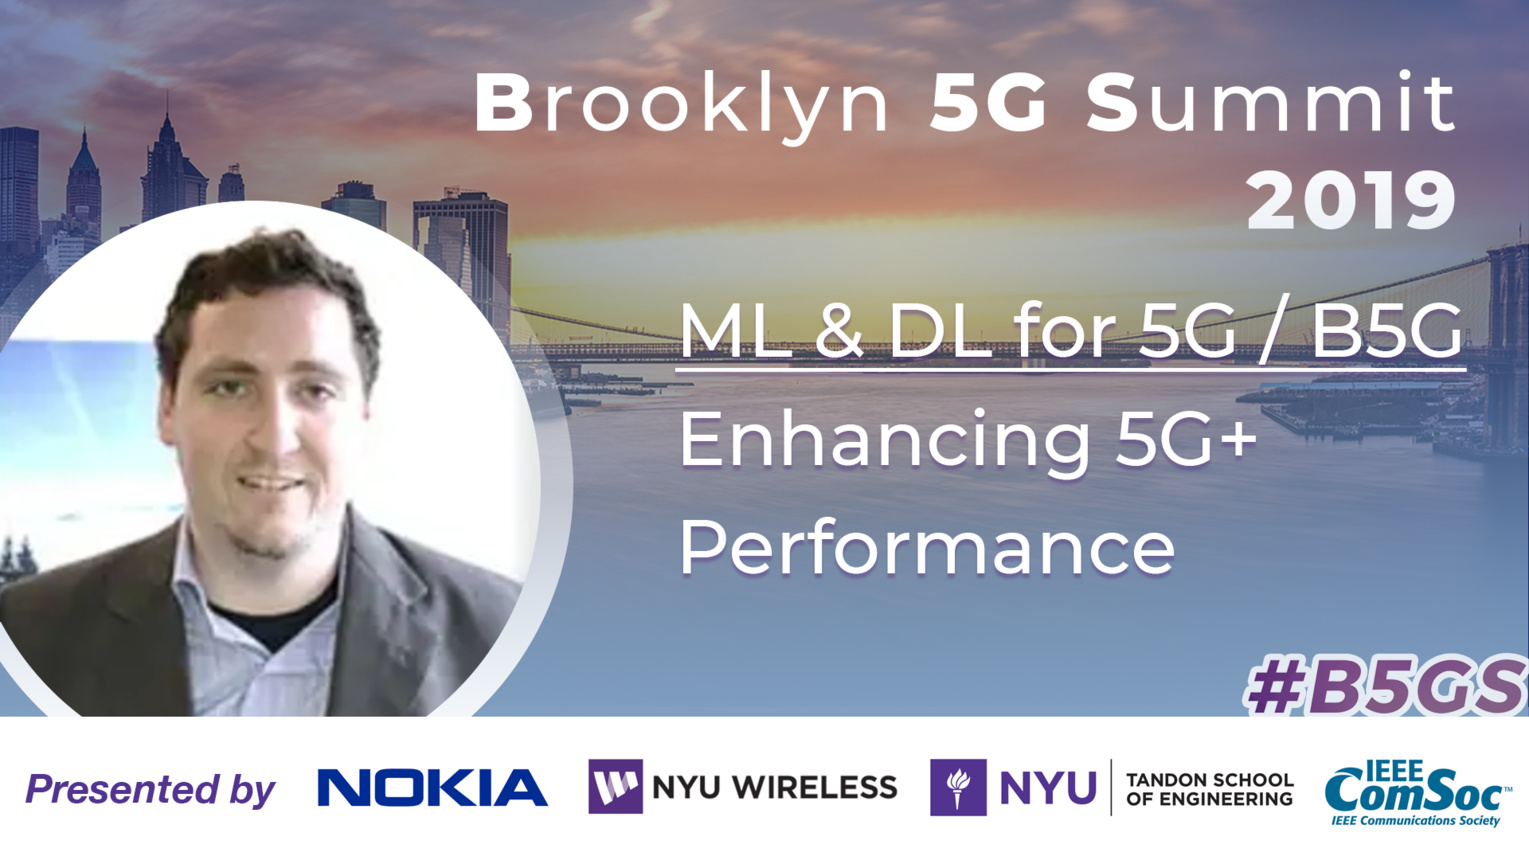 Enhancing 5G+ Performance: ML & DL for 5G - Tim O'Shea - B5GS 2019